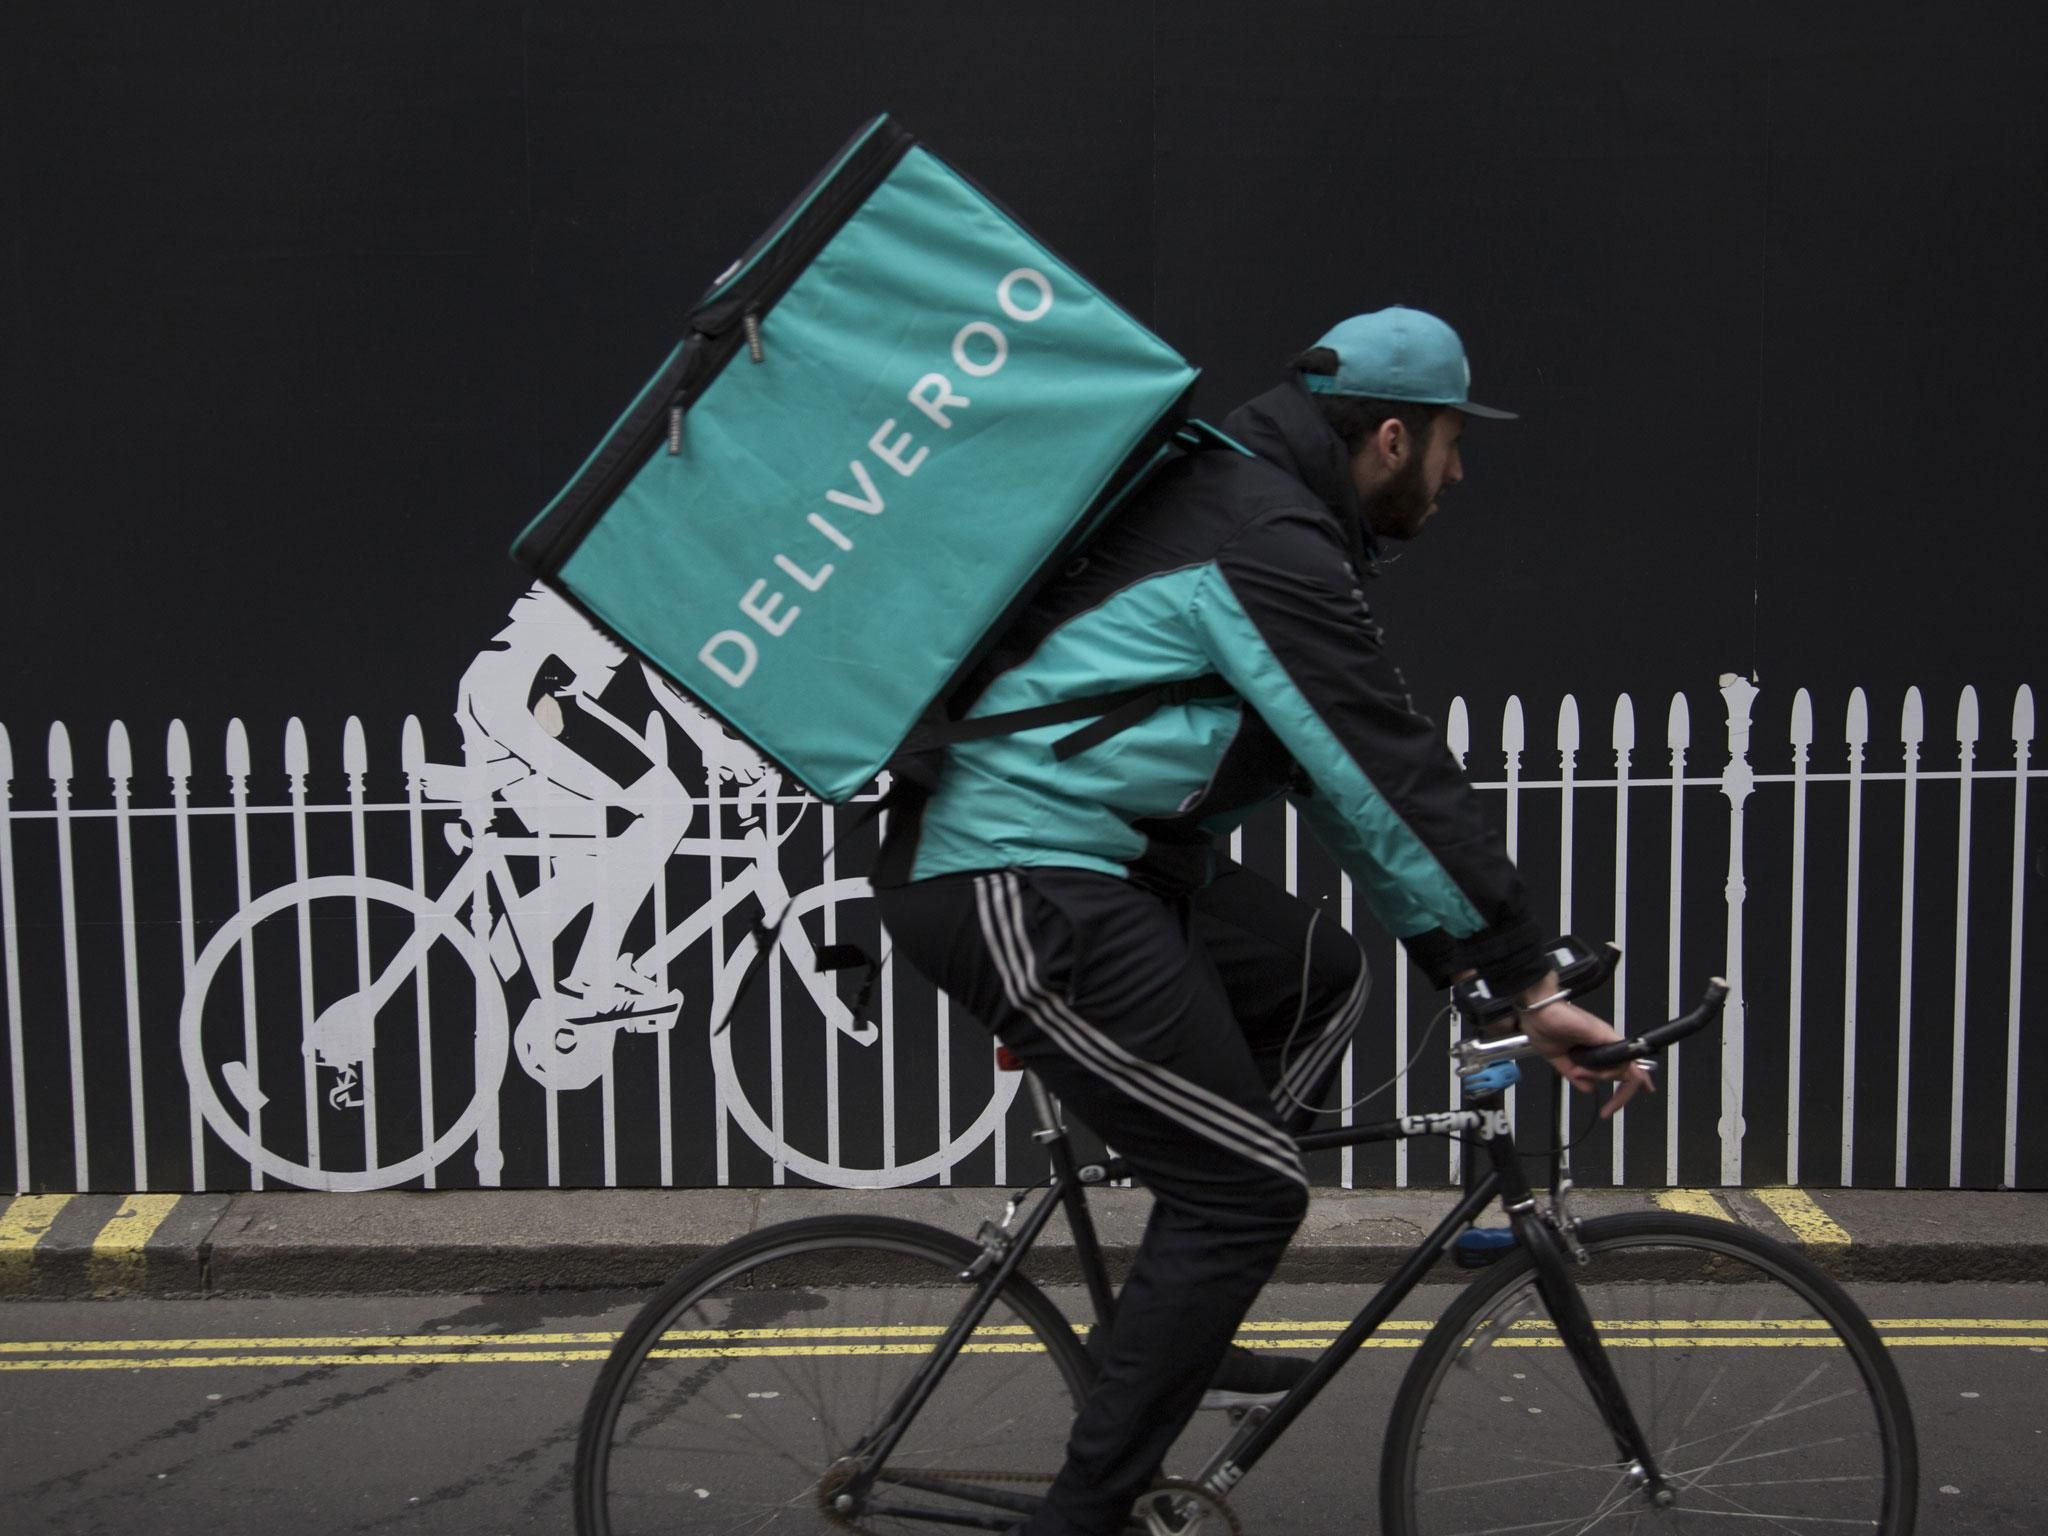 Deliveroo Is Offering Rainbow Themed Dishes To Celebrate London